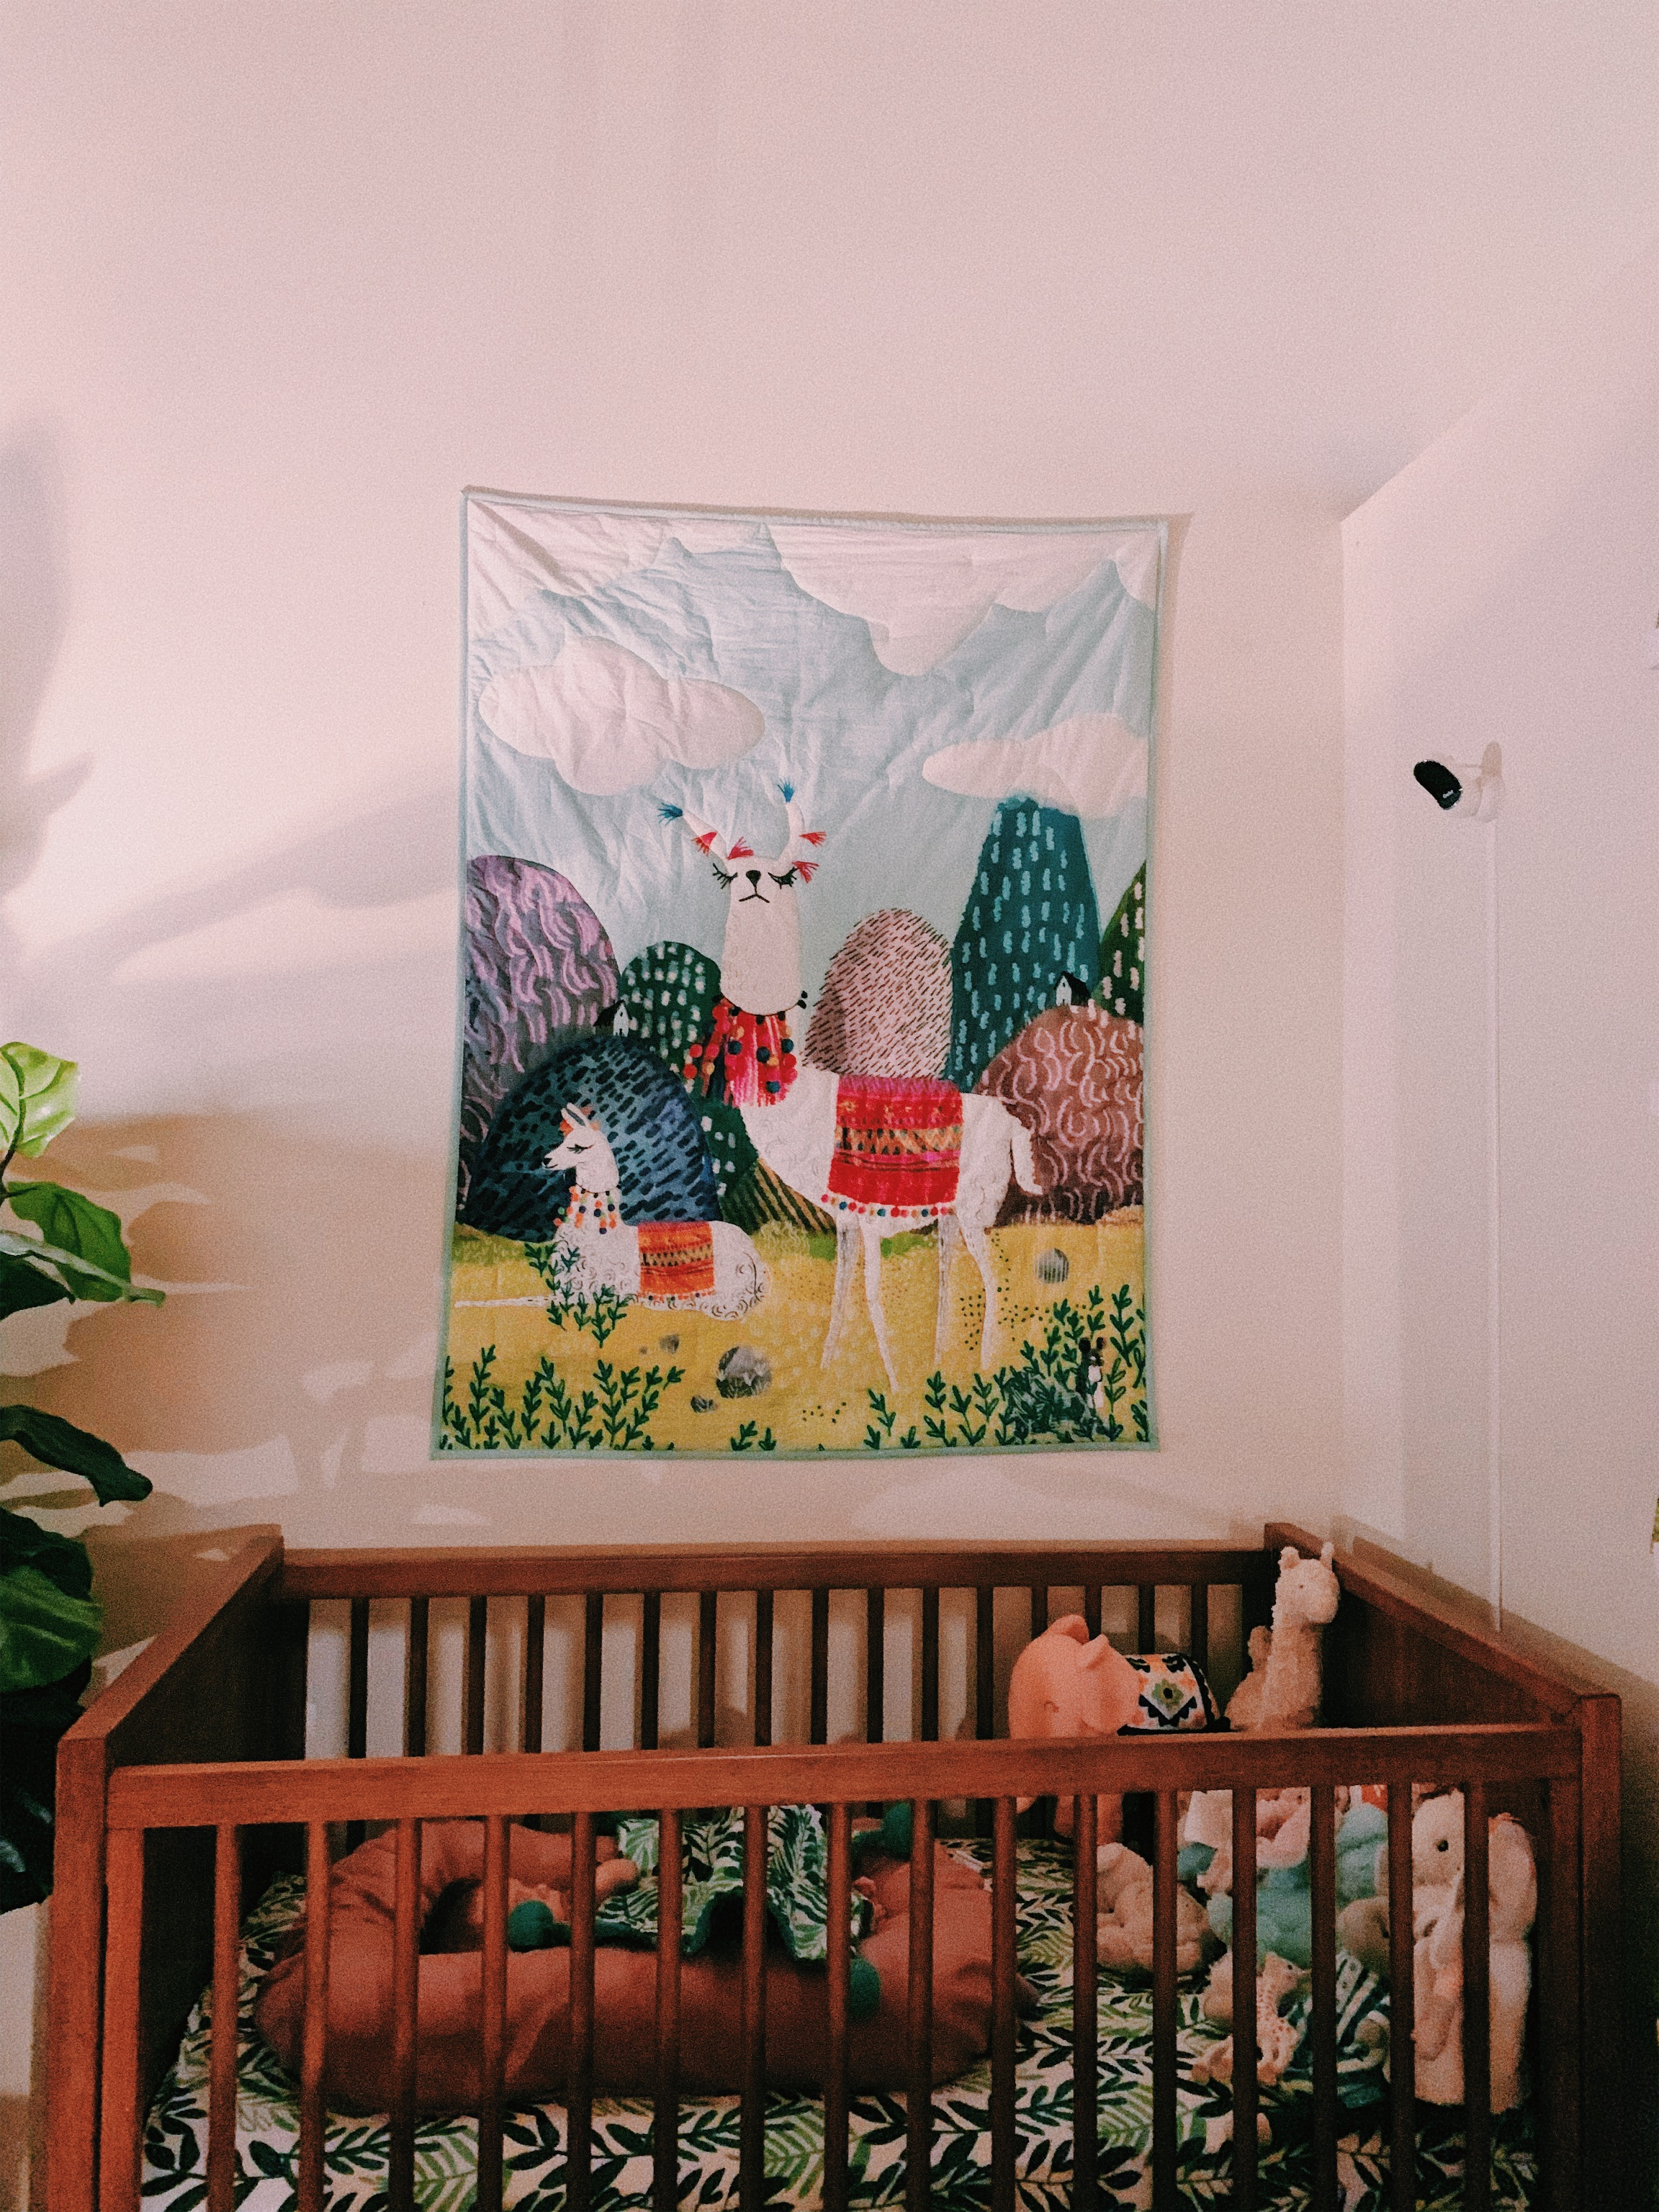 Some sweet friends gifted us this beautiful Anthropologie toddler blanket. Daniel had the idea to use it as wall art until she's big enough to use it!